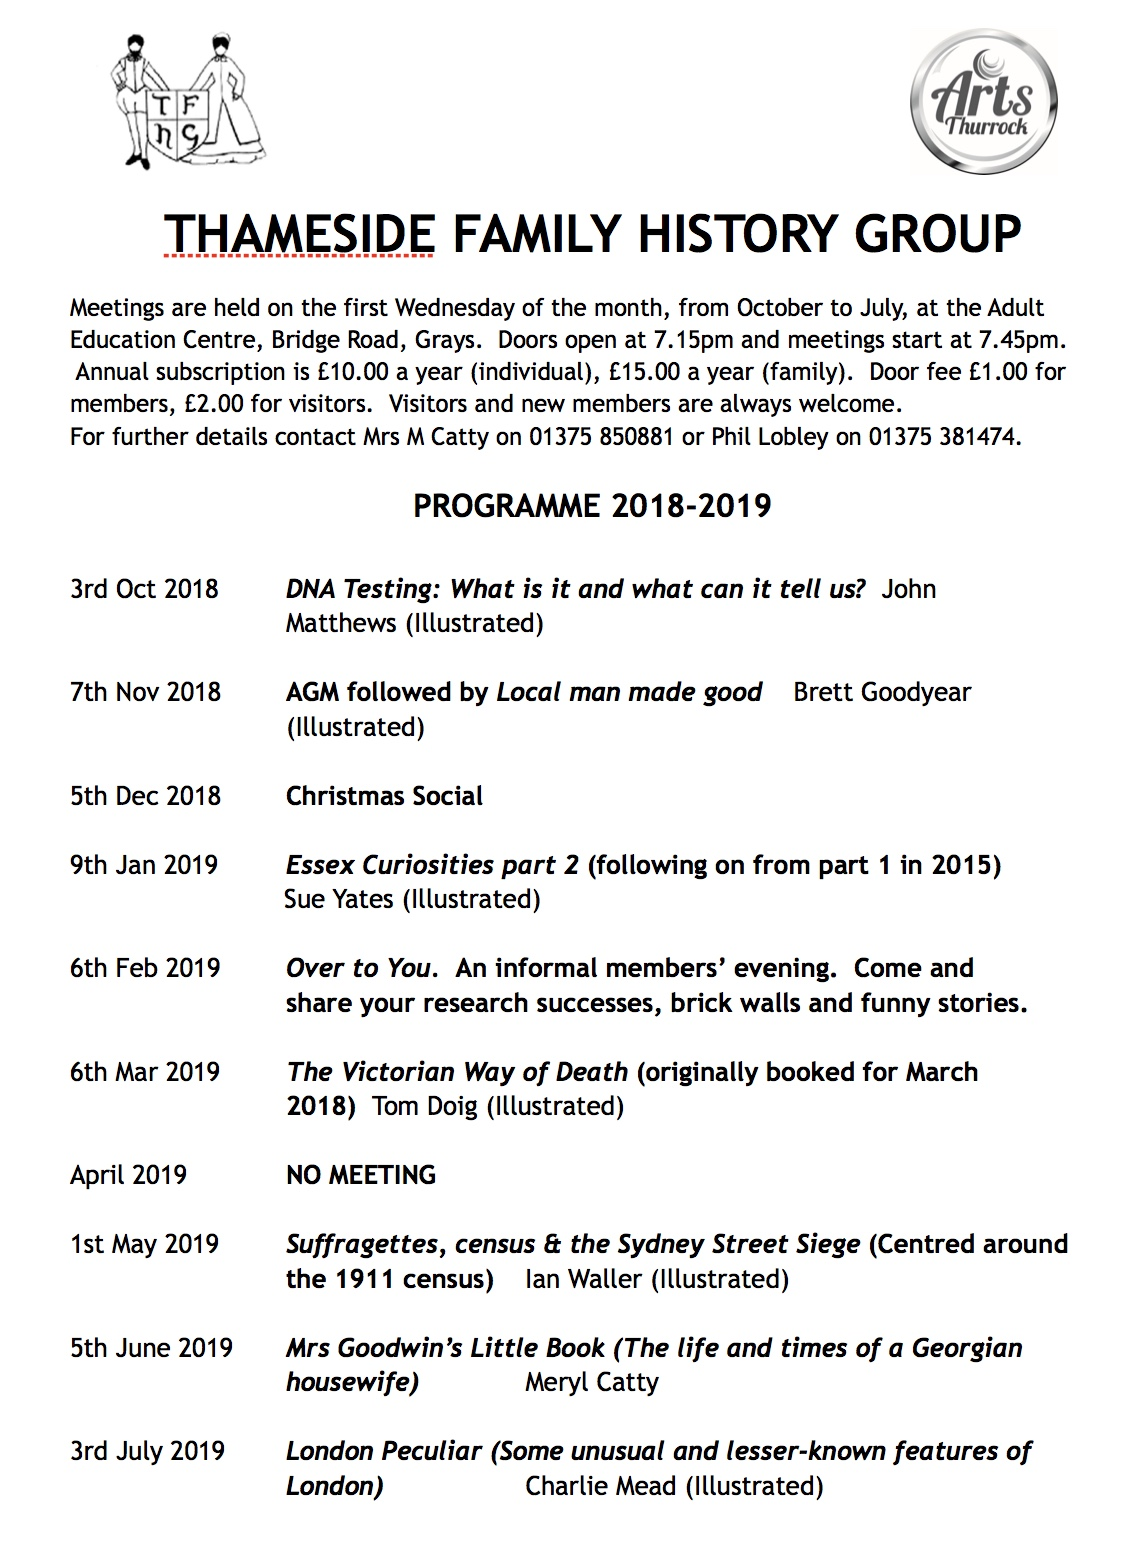 Thameside Family History Group: DNA Testing - What is it and what can it tell us?